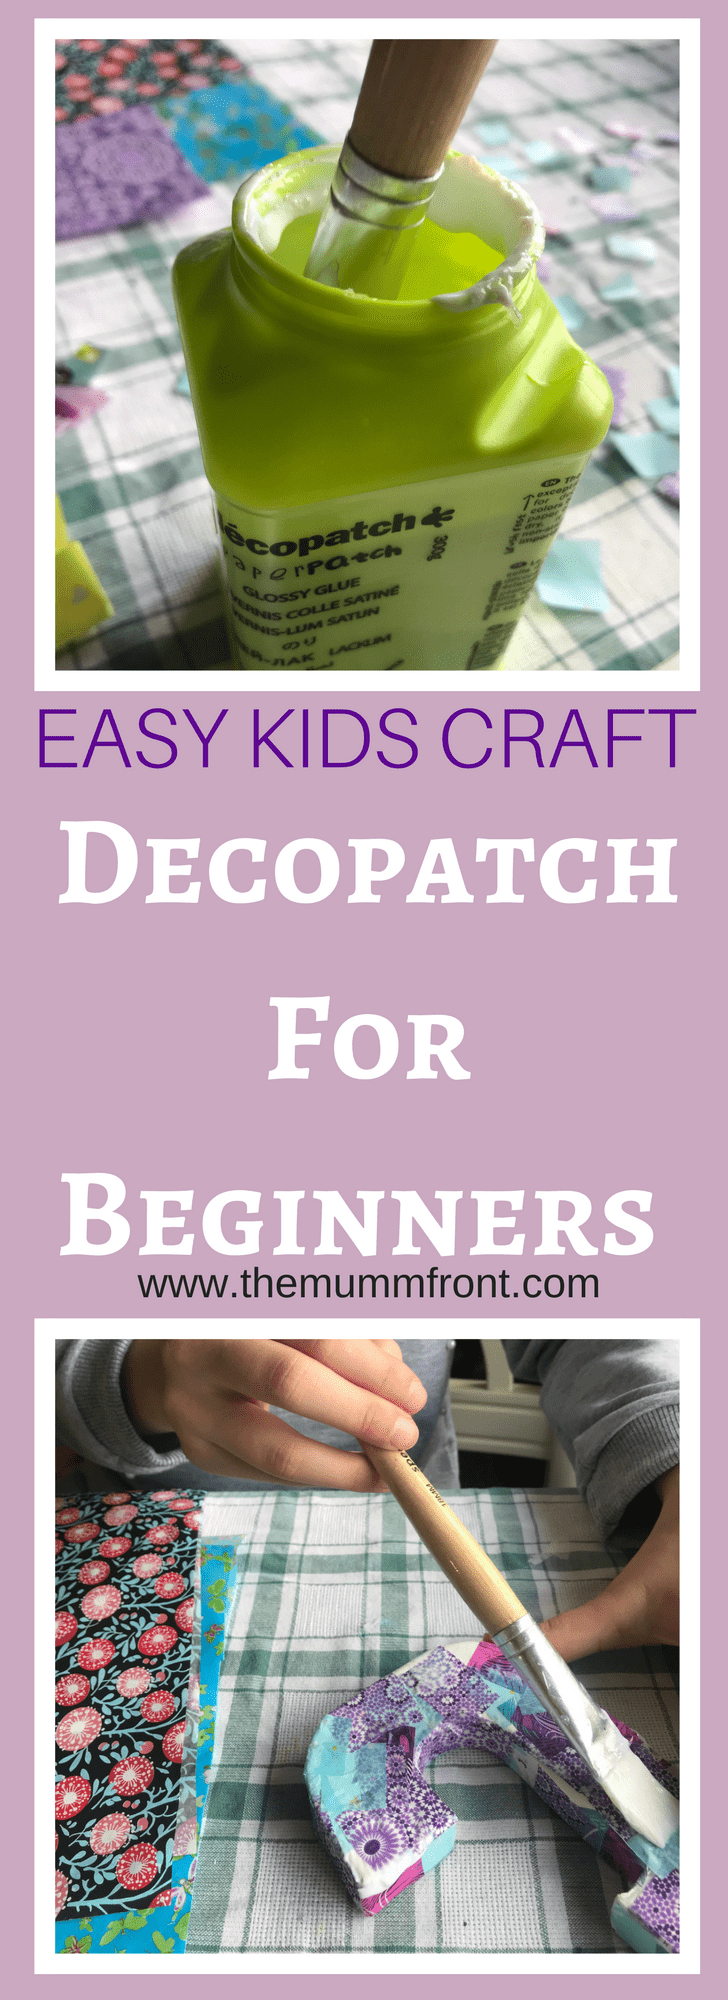 decopatch for kids | simple decopatch activity | Kids crafts ideas | kids arts and crafts